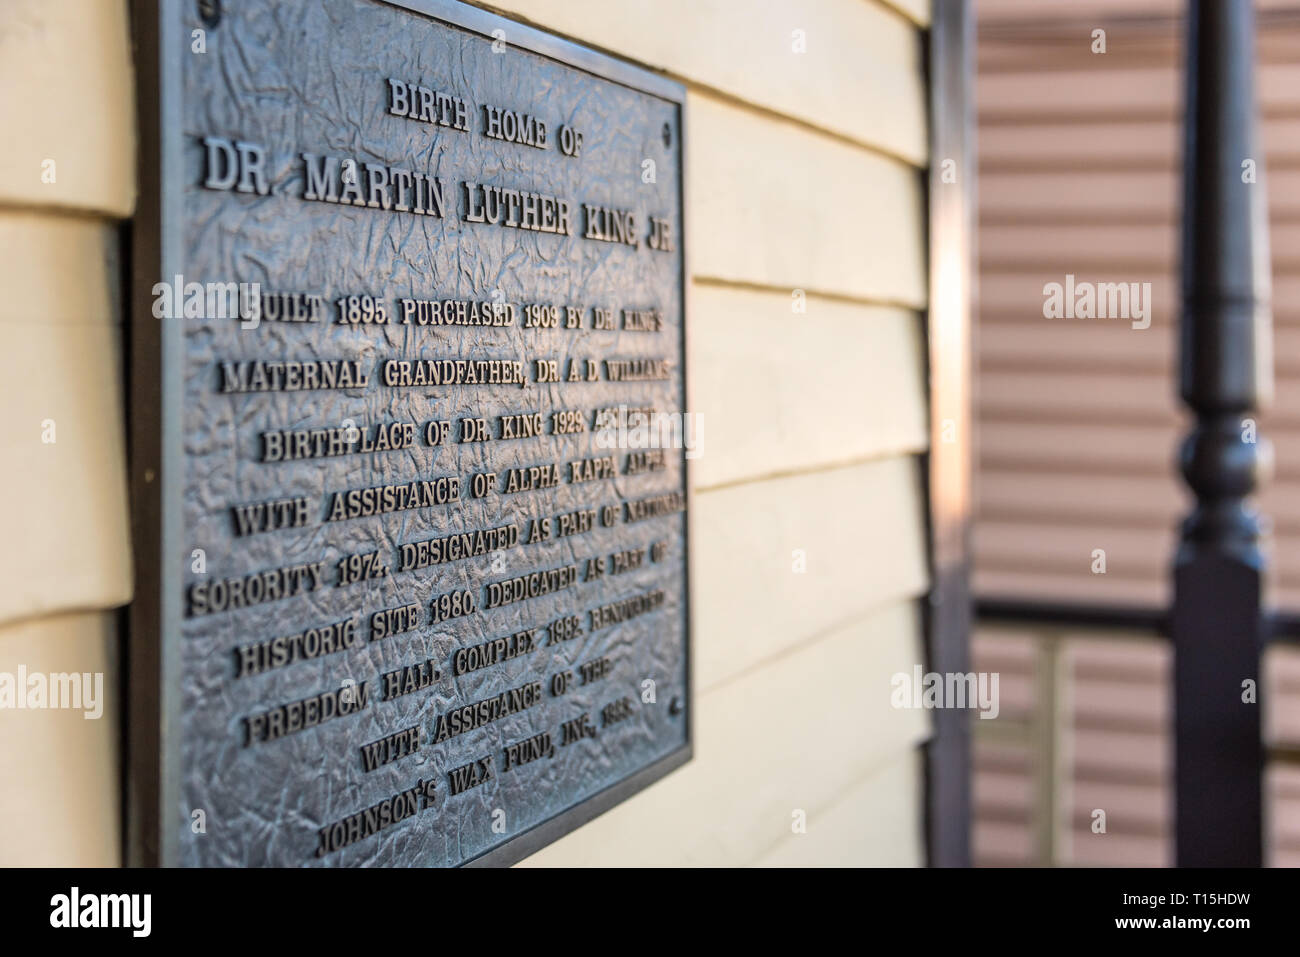 Historical plaque at the birth home of Dr. Martin Luther King, Jr. in Atlanta, Georgia. (USA) - Stock Image